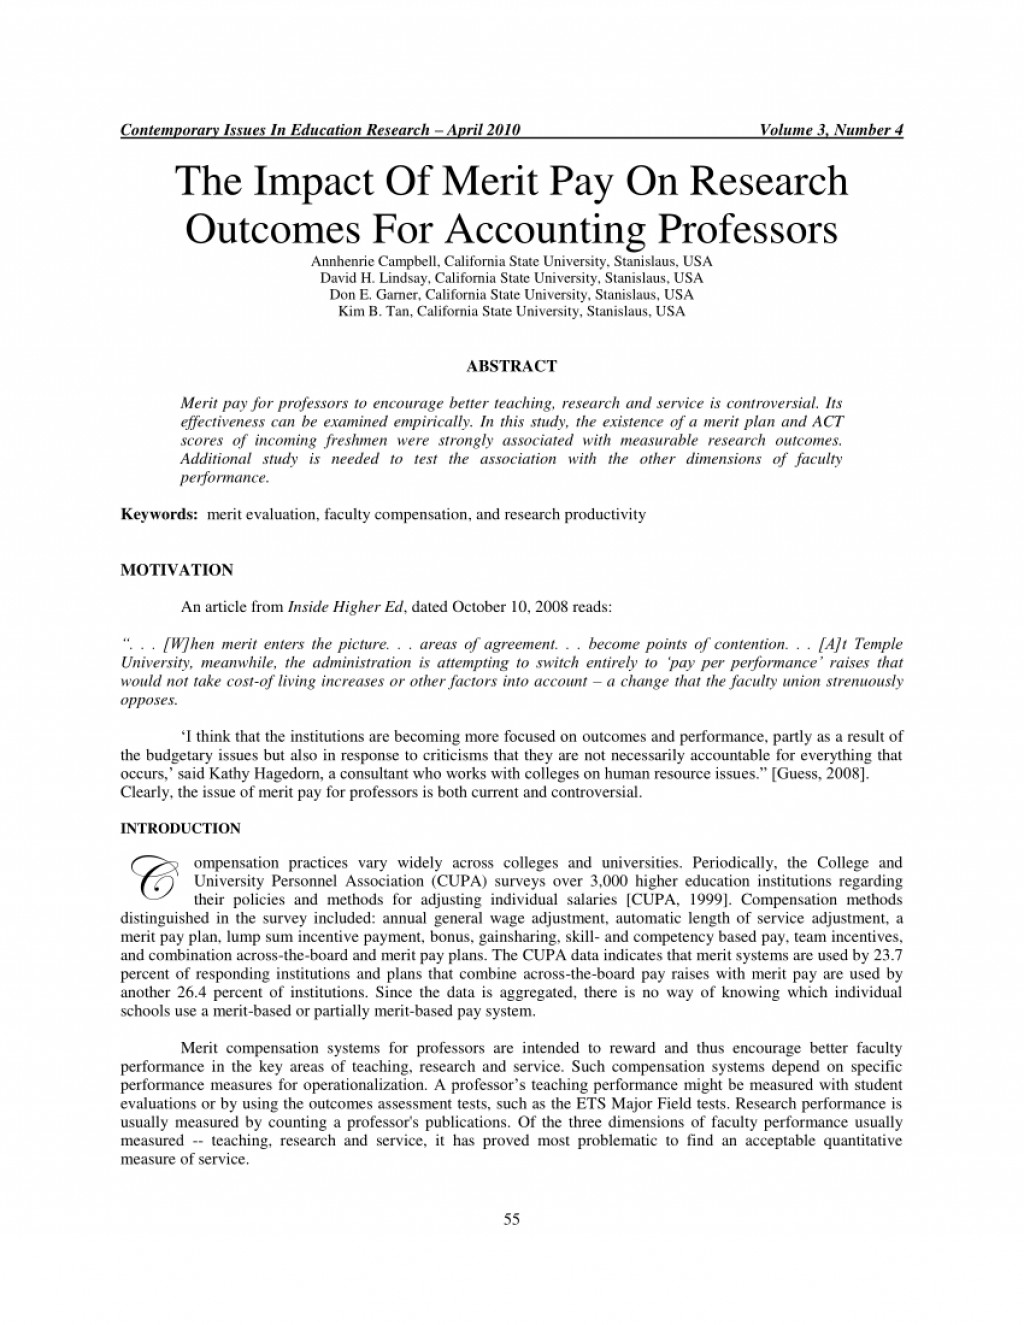 017 Pay For Research Paper Excellent Equal Work In India Performance Writing Large